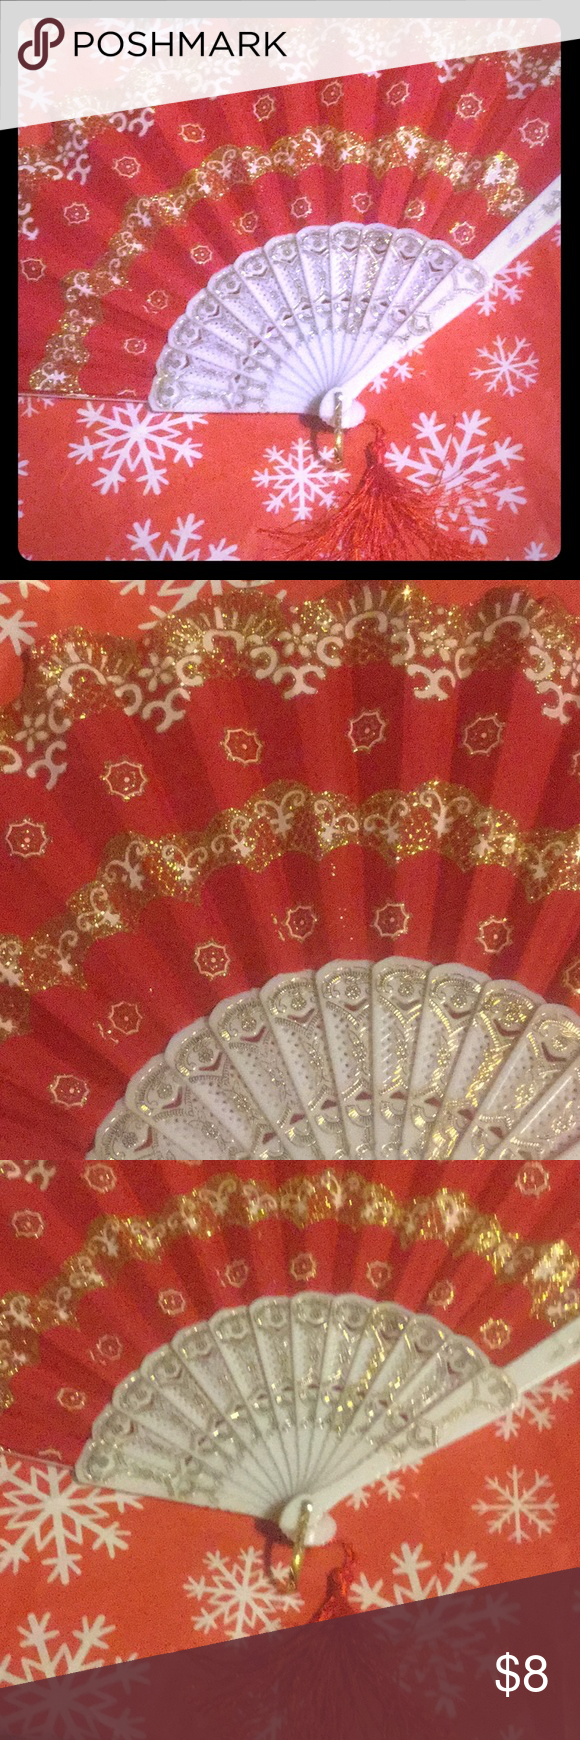 Red & Gold Handheld Fan 🎁Great Gift Excellent Condition 🎁New 🎉bundle to save 20% Accessories